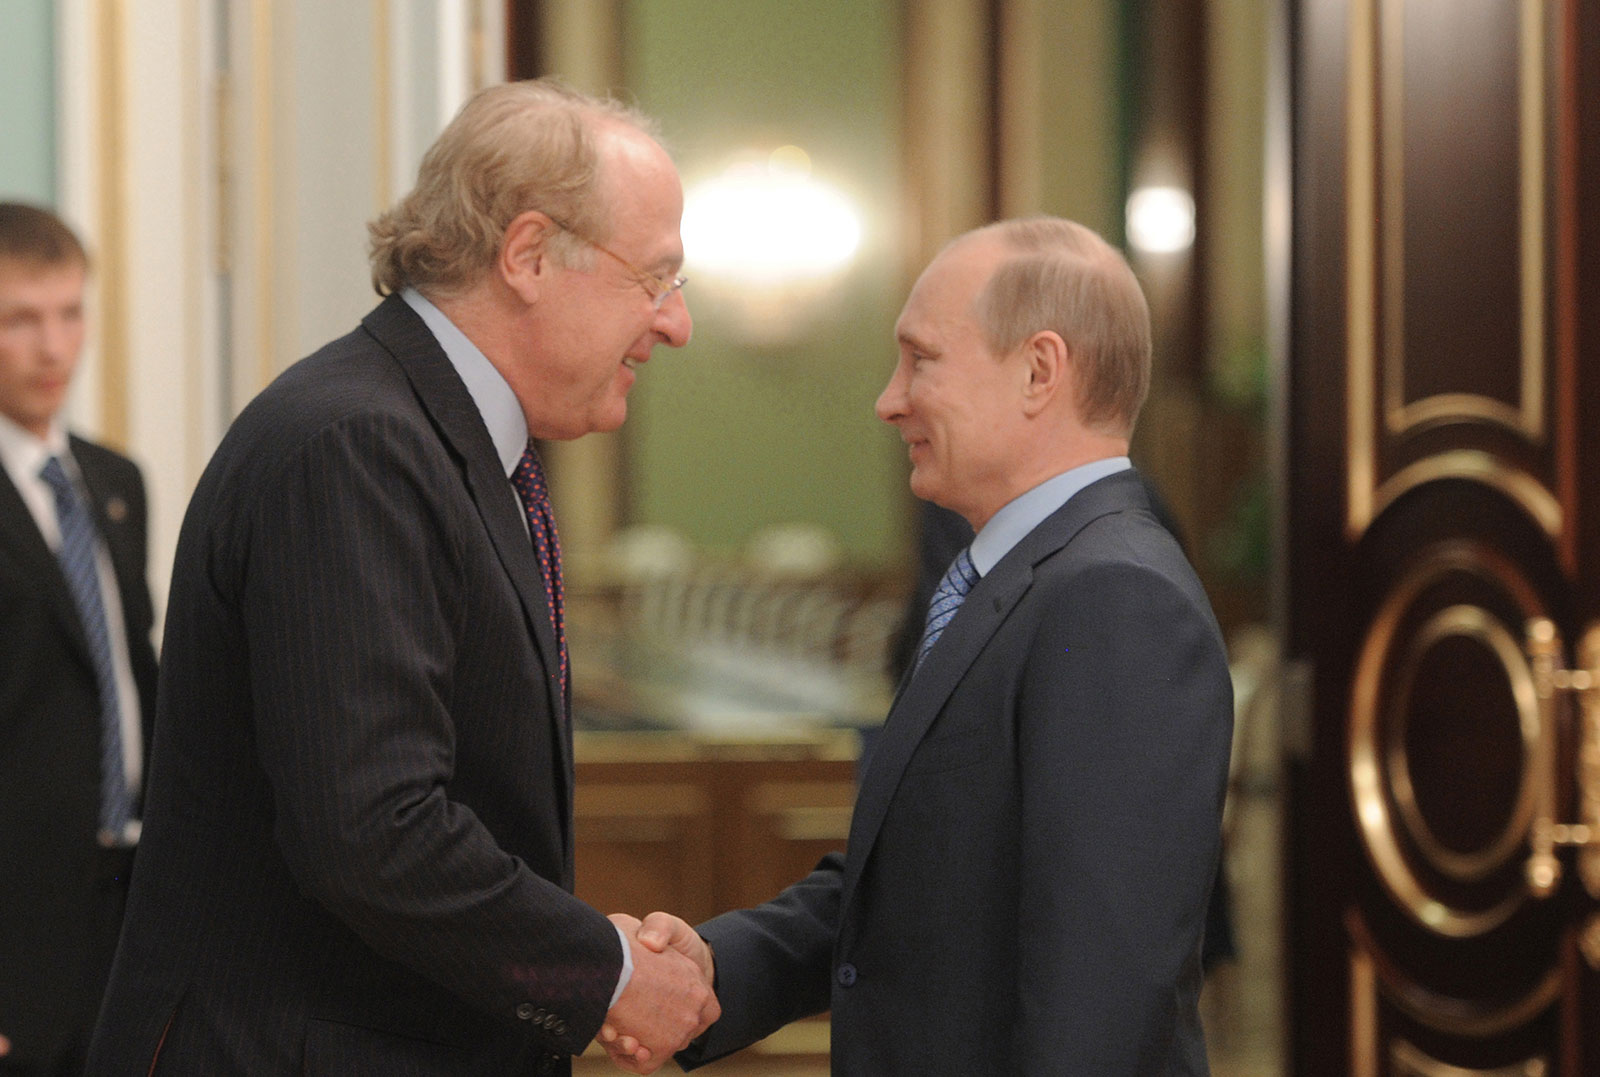 Paolo Scaroni and Vladimir Putin during their meeting at the government headquarters in Moscow, on April 25, 2012. (ALEXEY DRUZHININ/AFP/Getty Images)